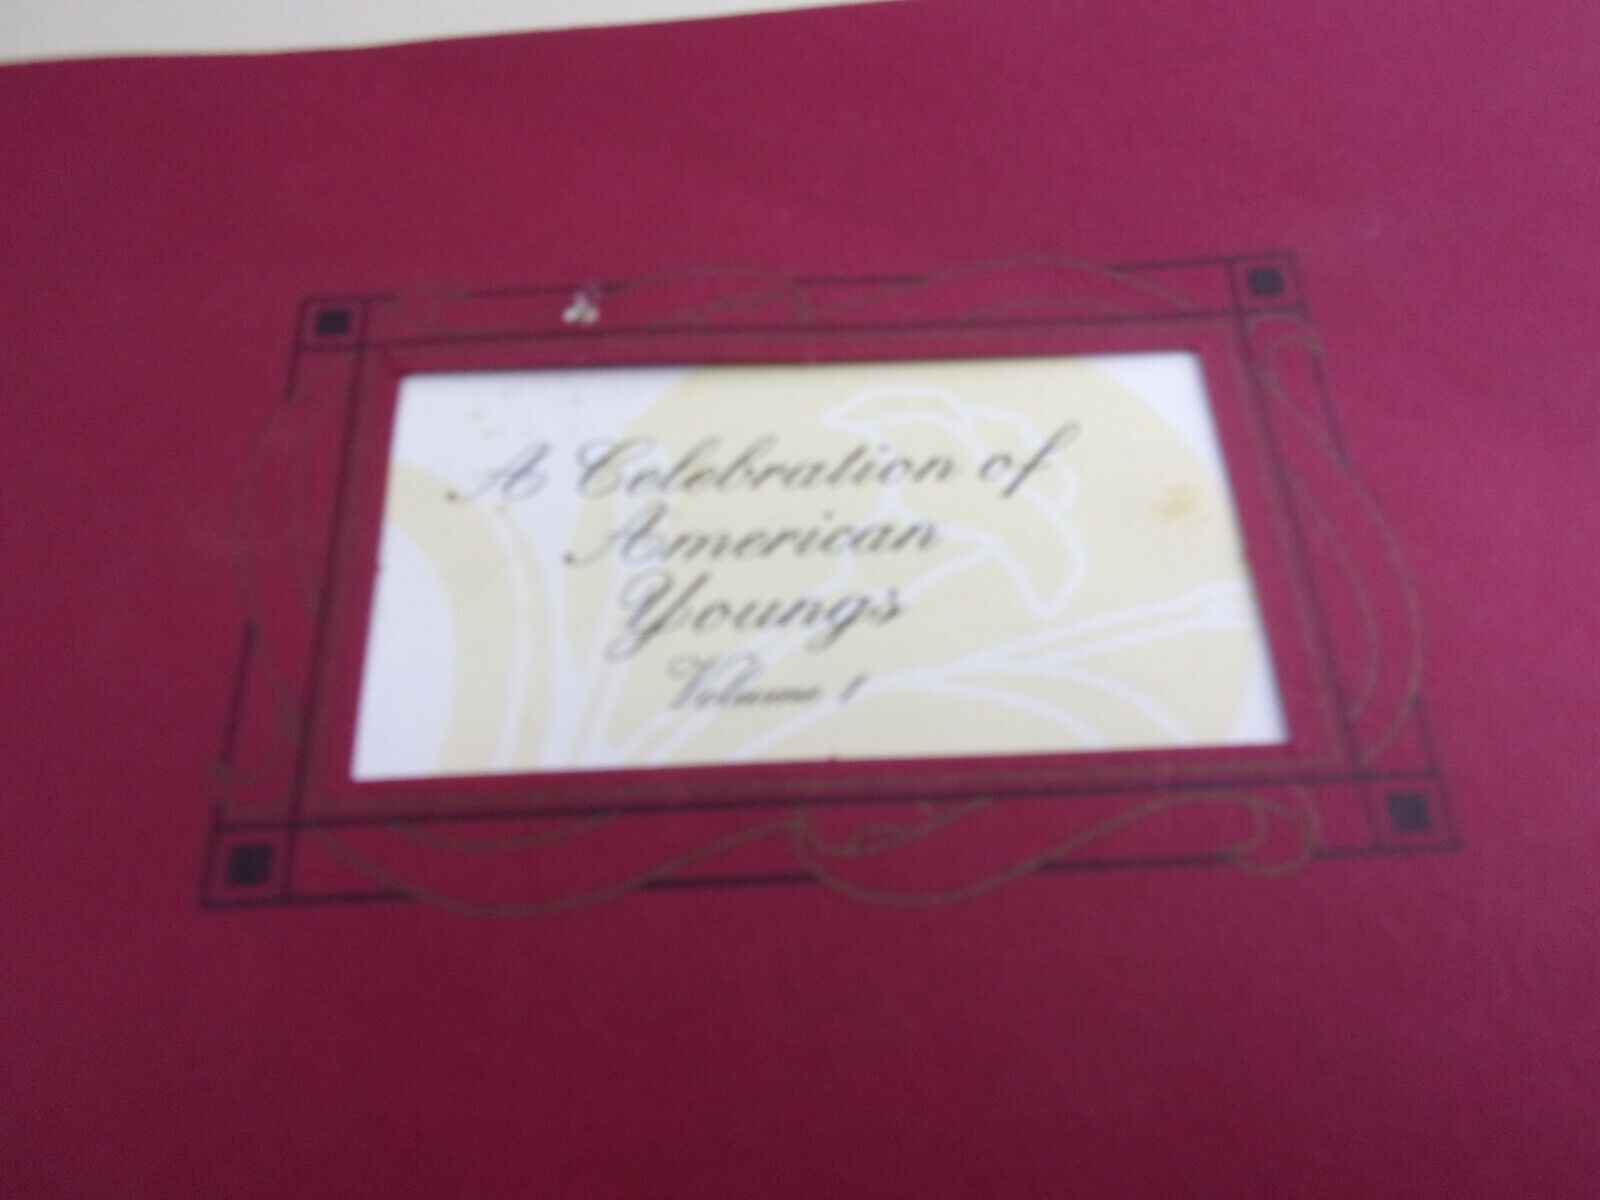 Young Family History Genealogy 1998 By Halberts Family Tree Research - $60.47